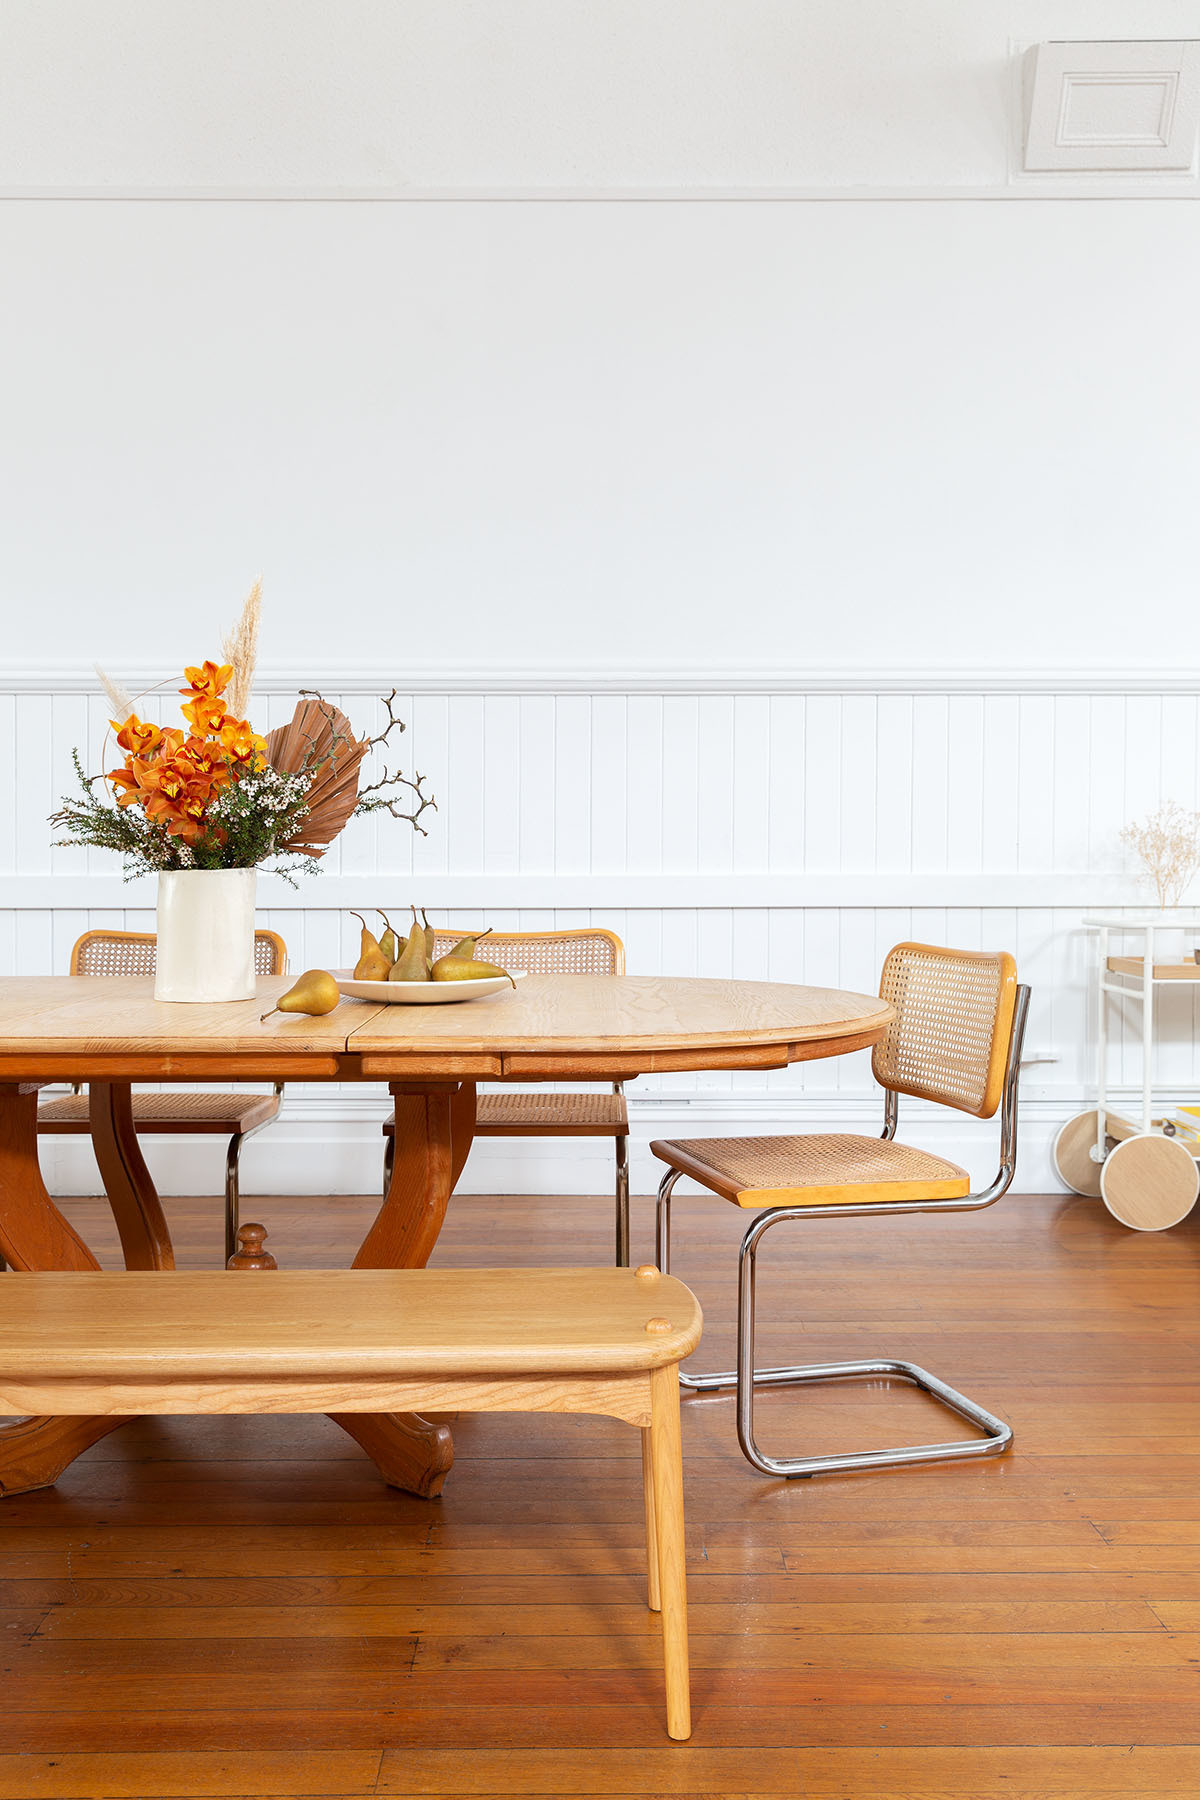 The couple carved out a contemporary dining nook within the wide open space, complete with a family heirloom dining table and vintage Marcel Breuer chairs. Heirloom Dining Table | Marcel Breuer Dining Chairs | Custom Vase | Asili Serving Dish.